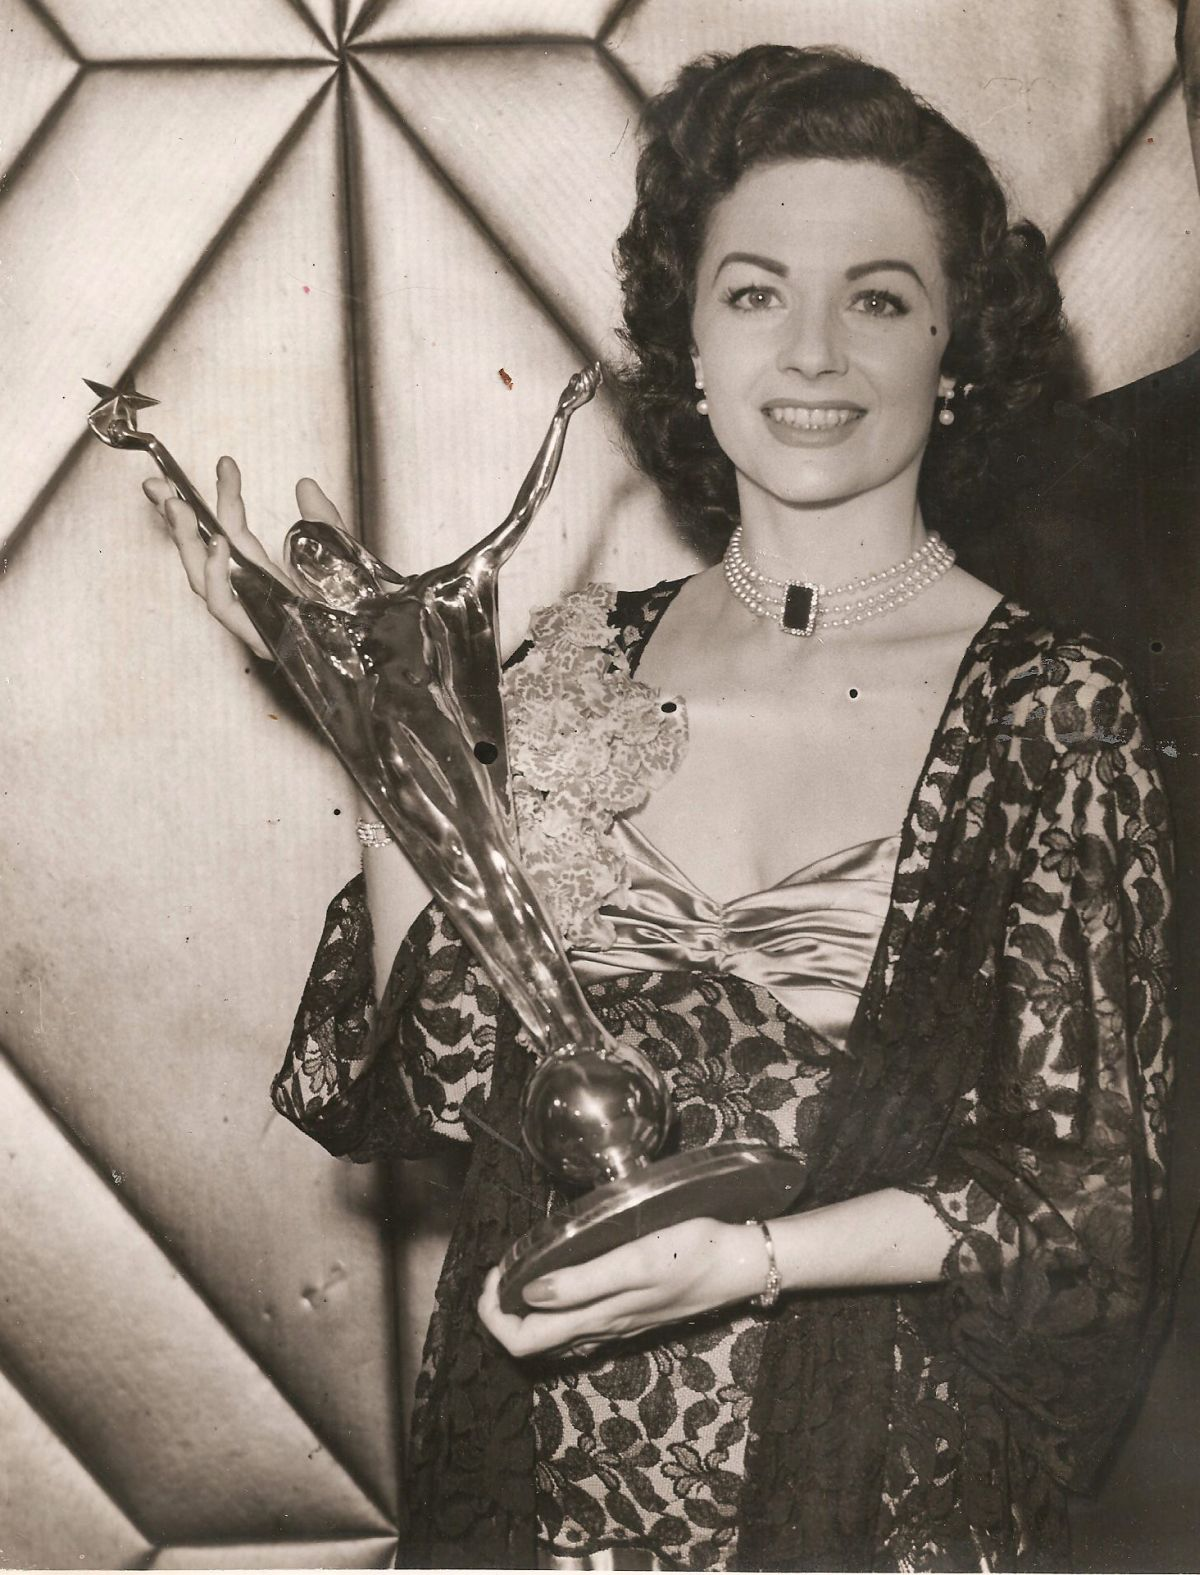 Jewellery belonging to film star Margaret Lockwood auctioned in Crewkerne